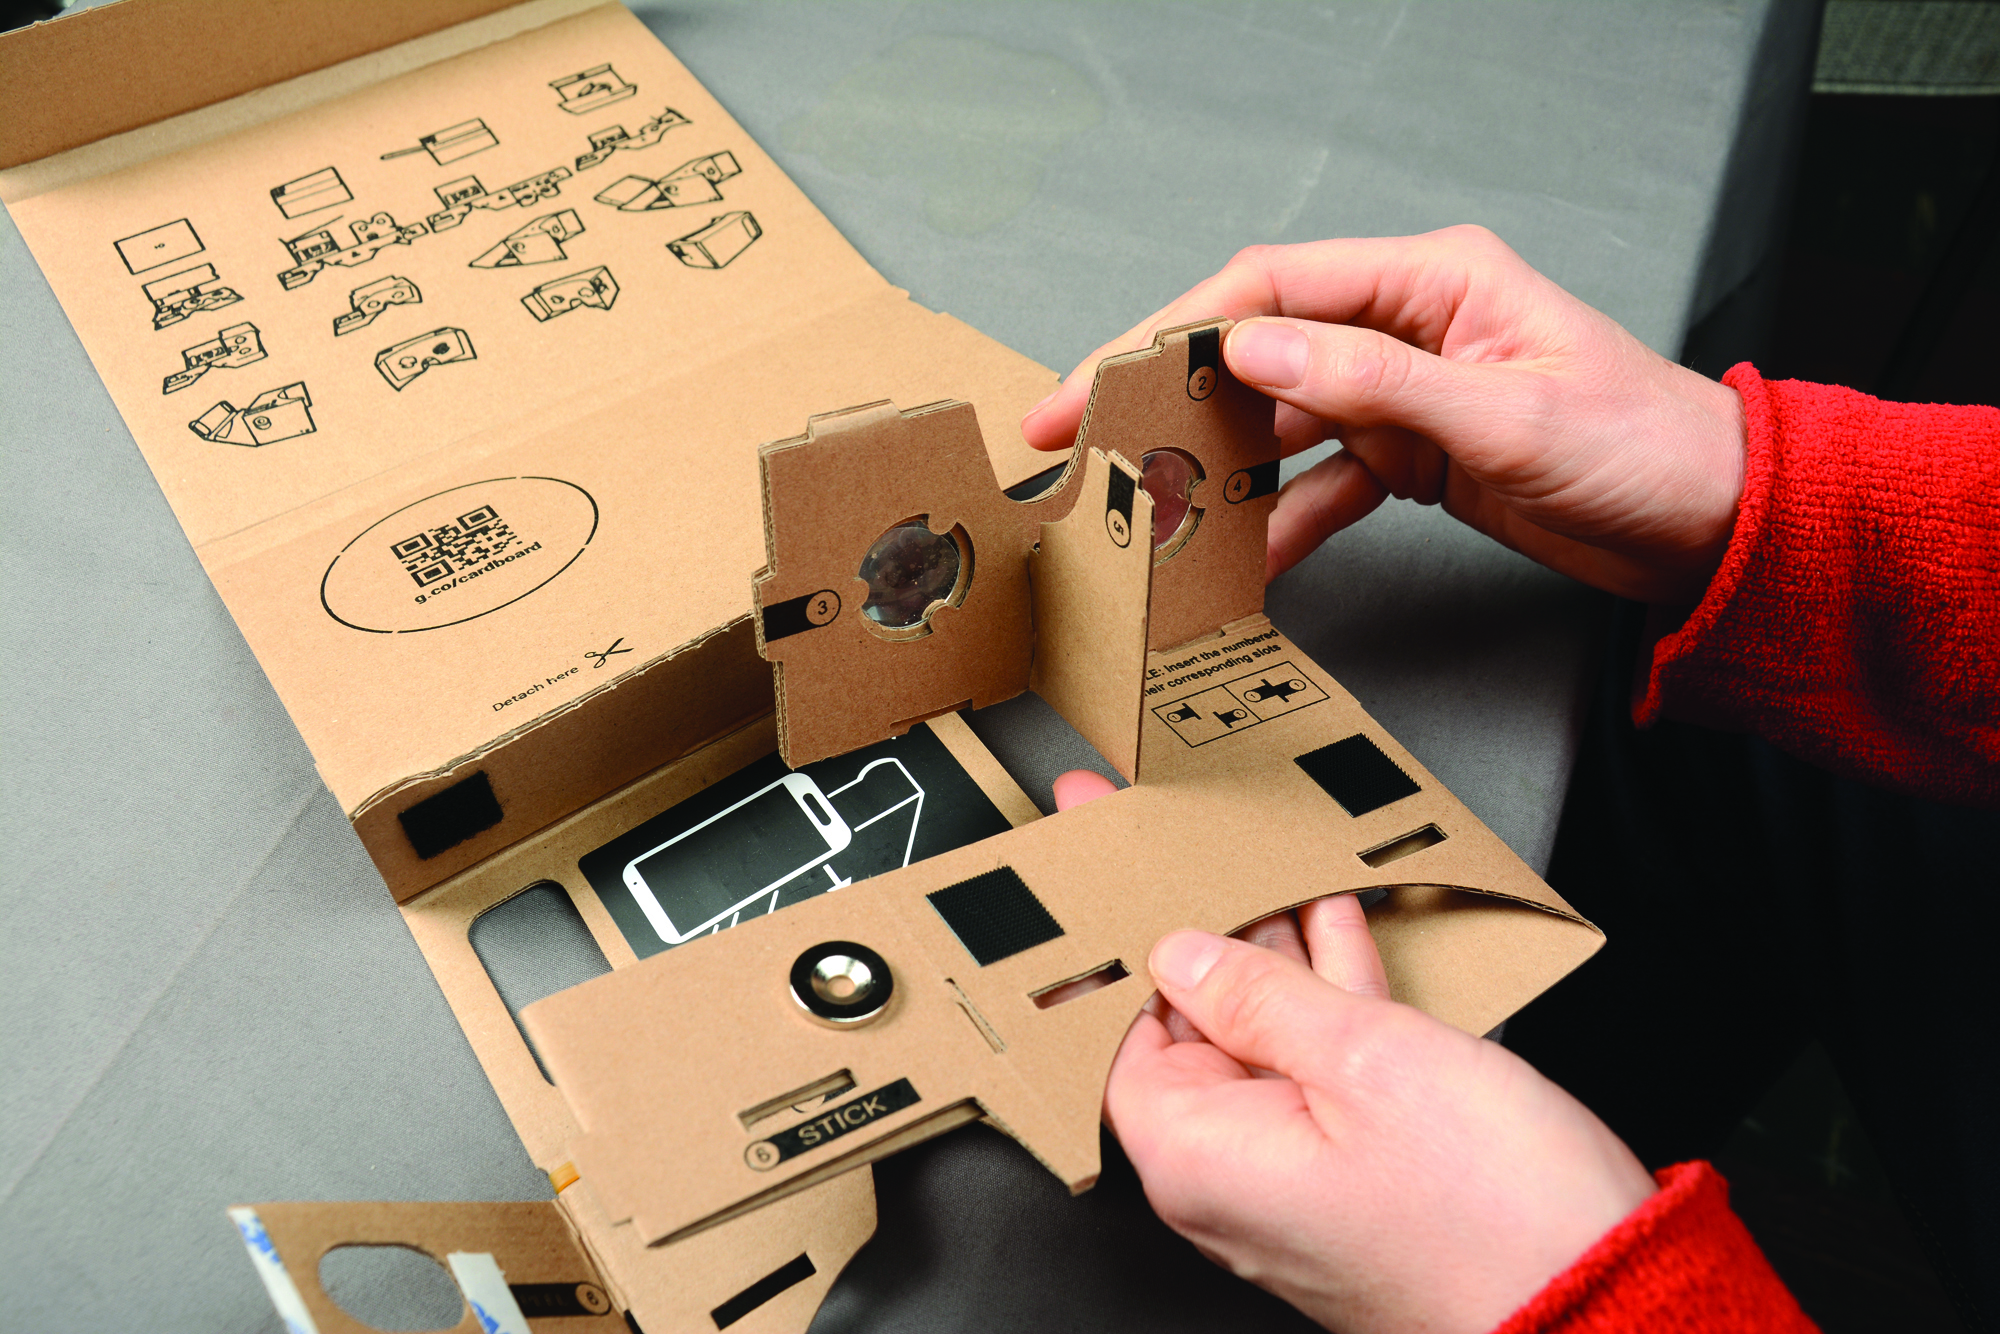 ba8845abaa5 For  19.99 you can purchase I AM CARDBOARD a vitual reality cardboard kit  from Google.